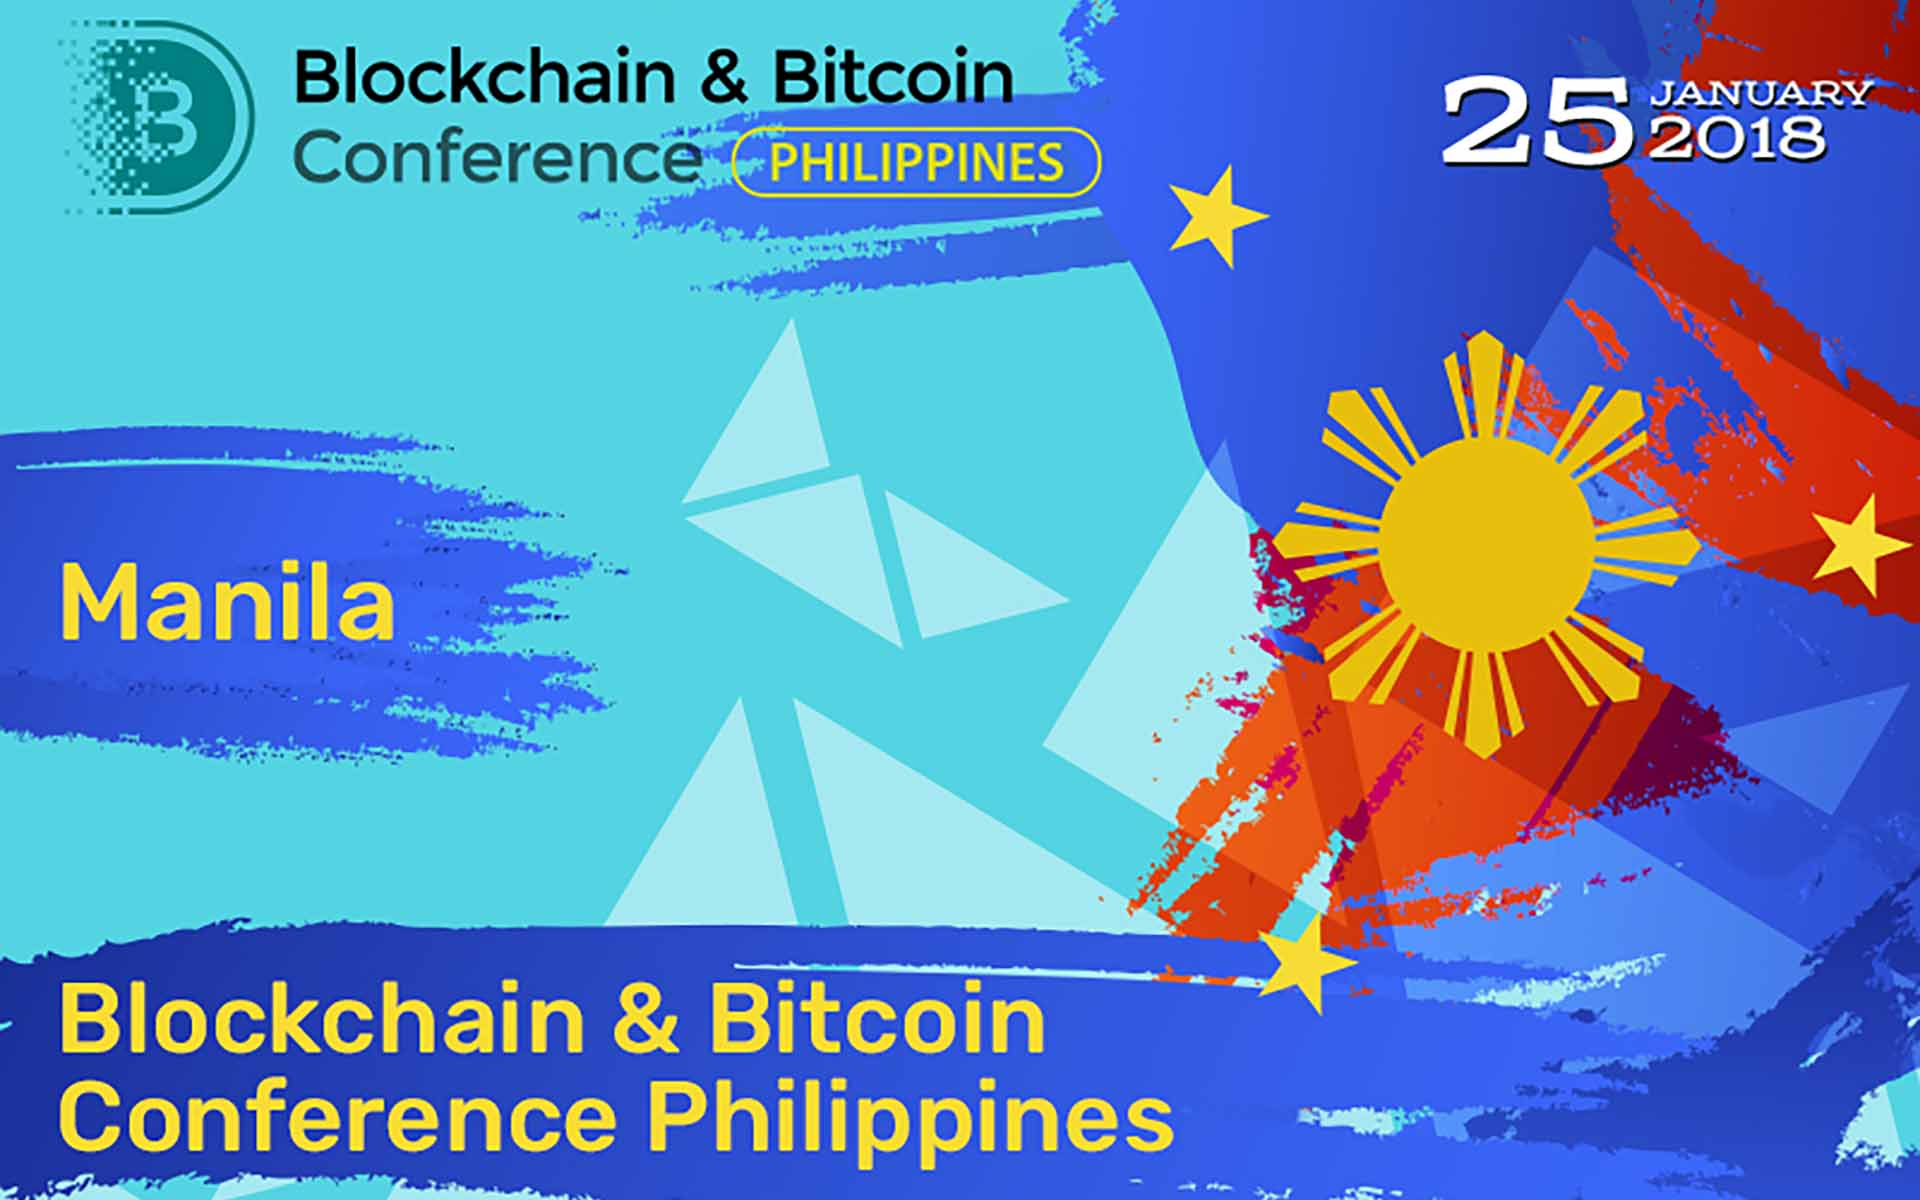 Who Will Be the Top Speakers of Blockchain & Bitcoin Conference Philippines?